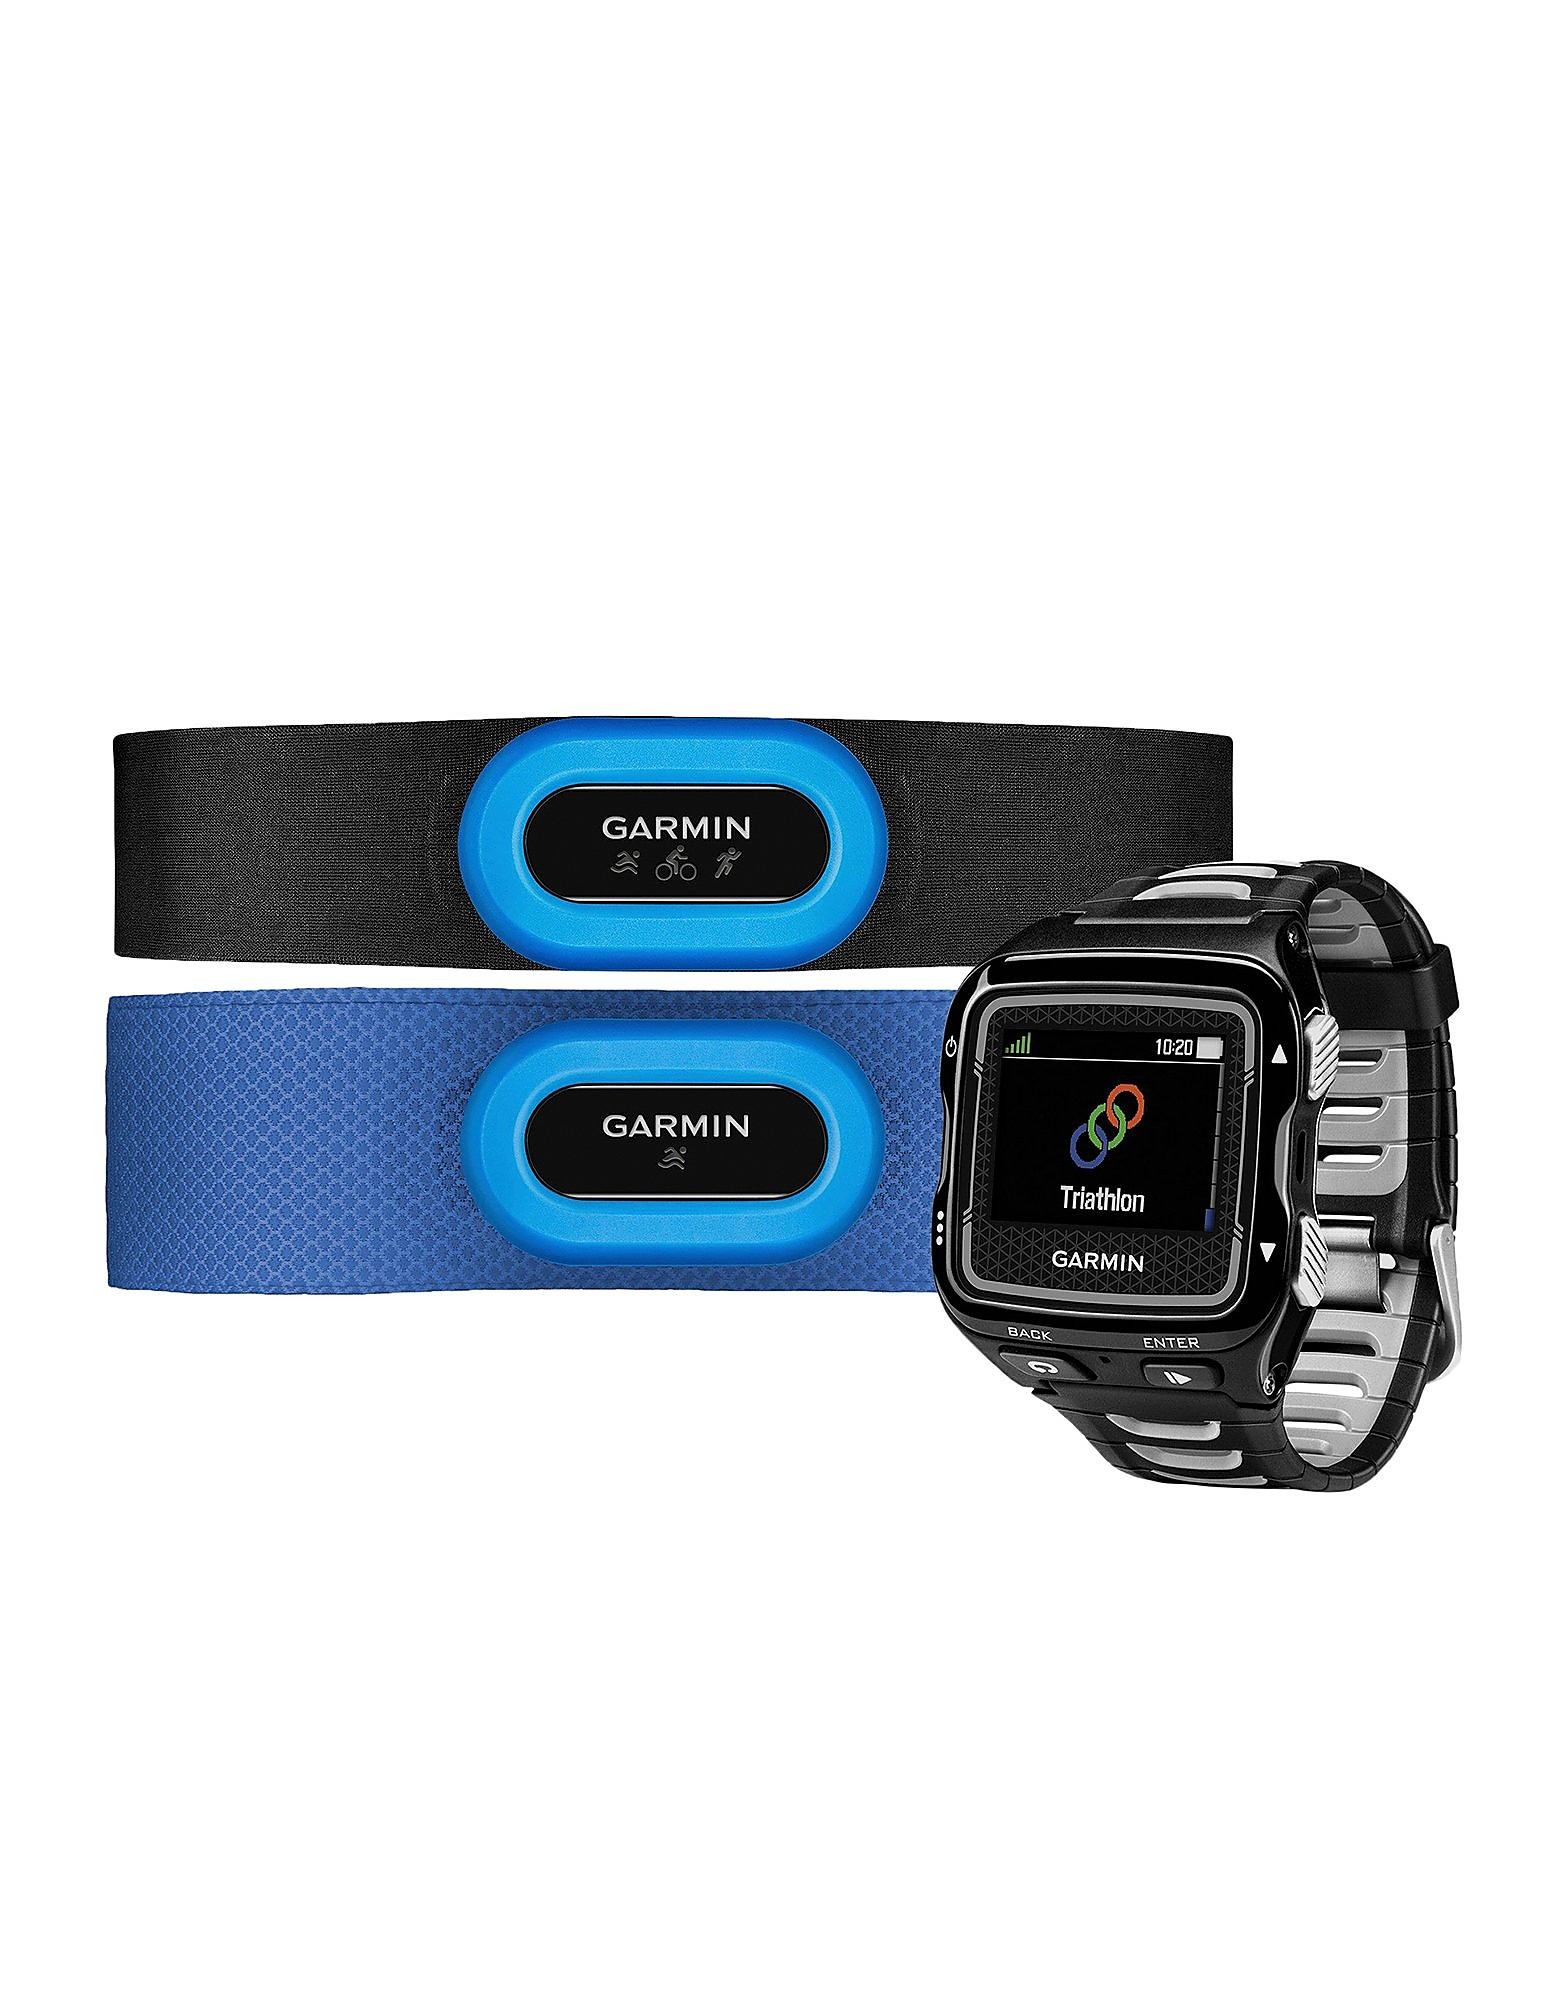 Garmin Forerunner 920 XT Multi-Sport GPS Watch